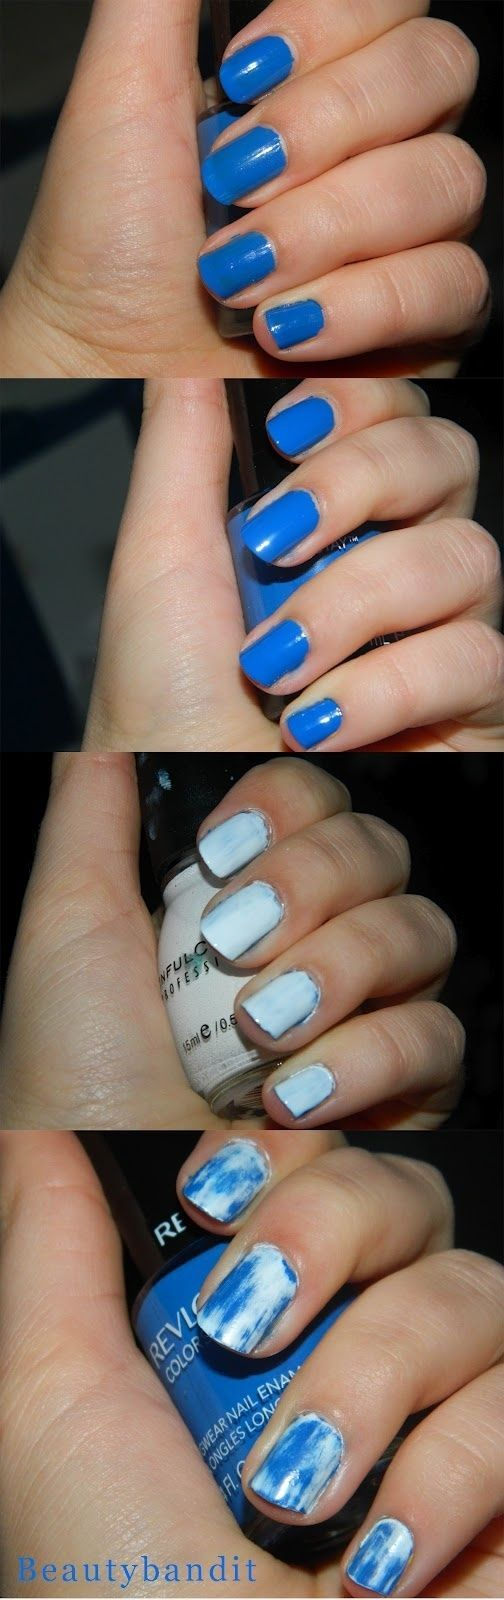 1 Paint your nails with a blue color. 2 Apply another coat of the blue. This will help to not get to your bare nail as fast. 3 Apply a white color on top of the blue. I used Sinful Colors in Snow Me White. 4 Dip a Q-tip in nail polish remover and gently swipe away the white. Be careful not to get to your bare nail. 5 Top coat! I used OPI Nail Envy Matte because it gives a nice natural finish- I didn't want something super glossy or by rachelpp